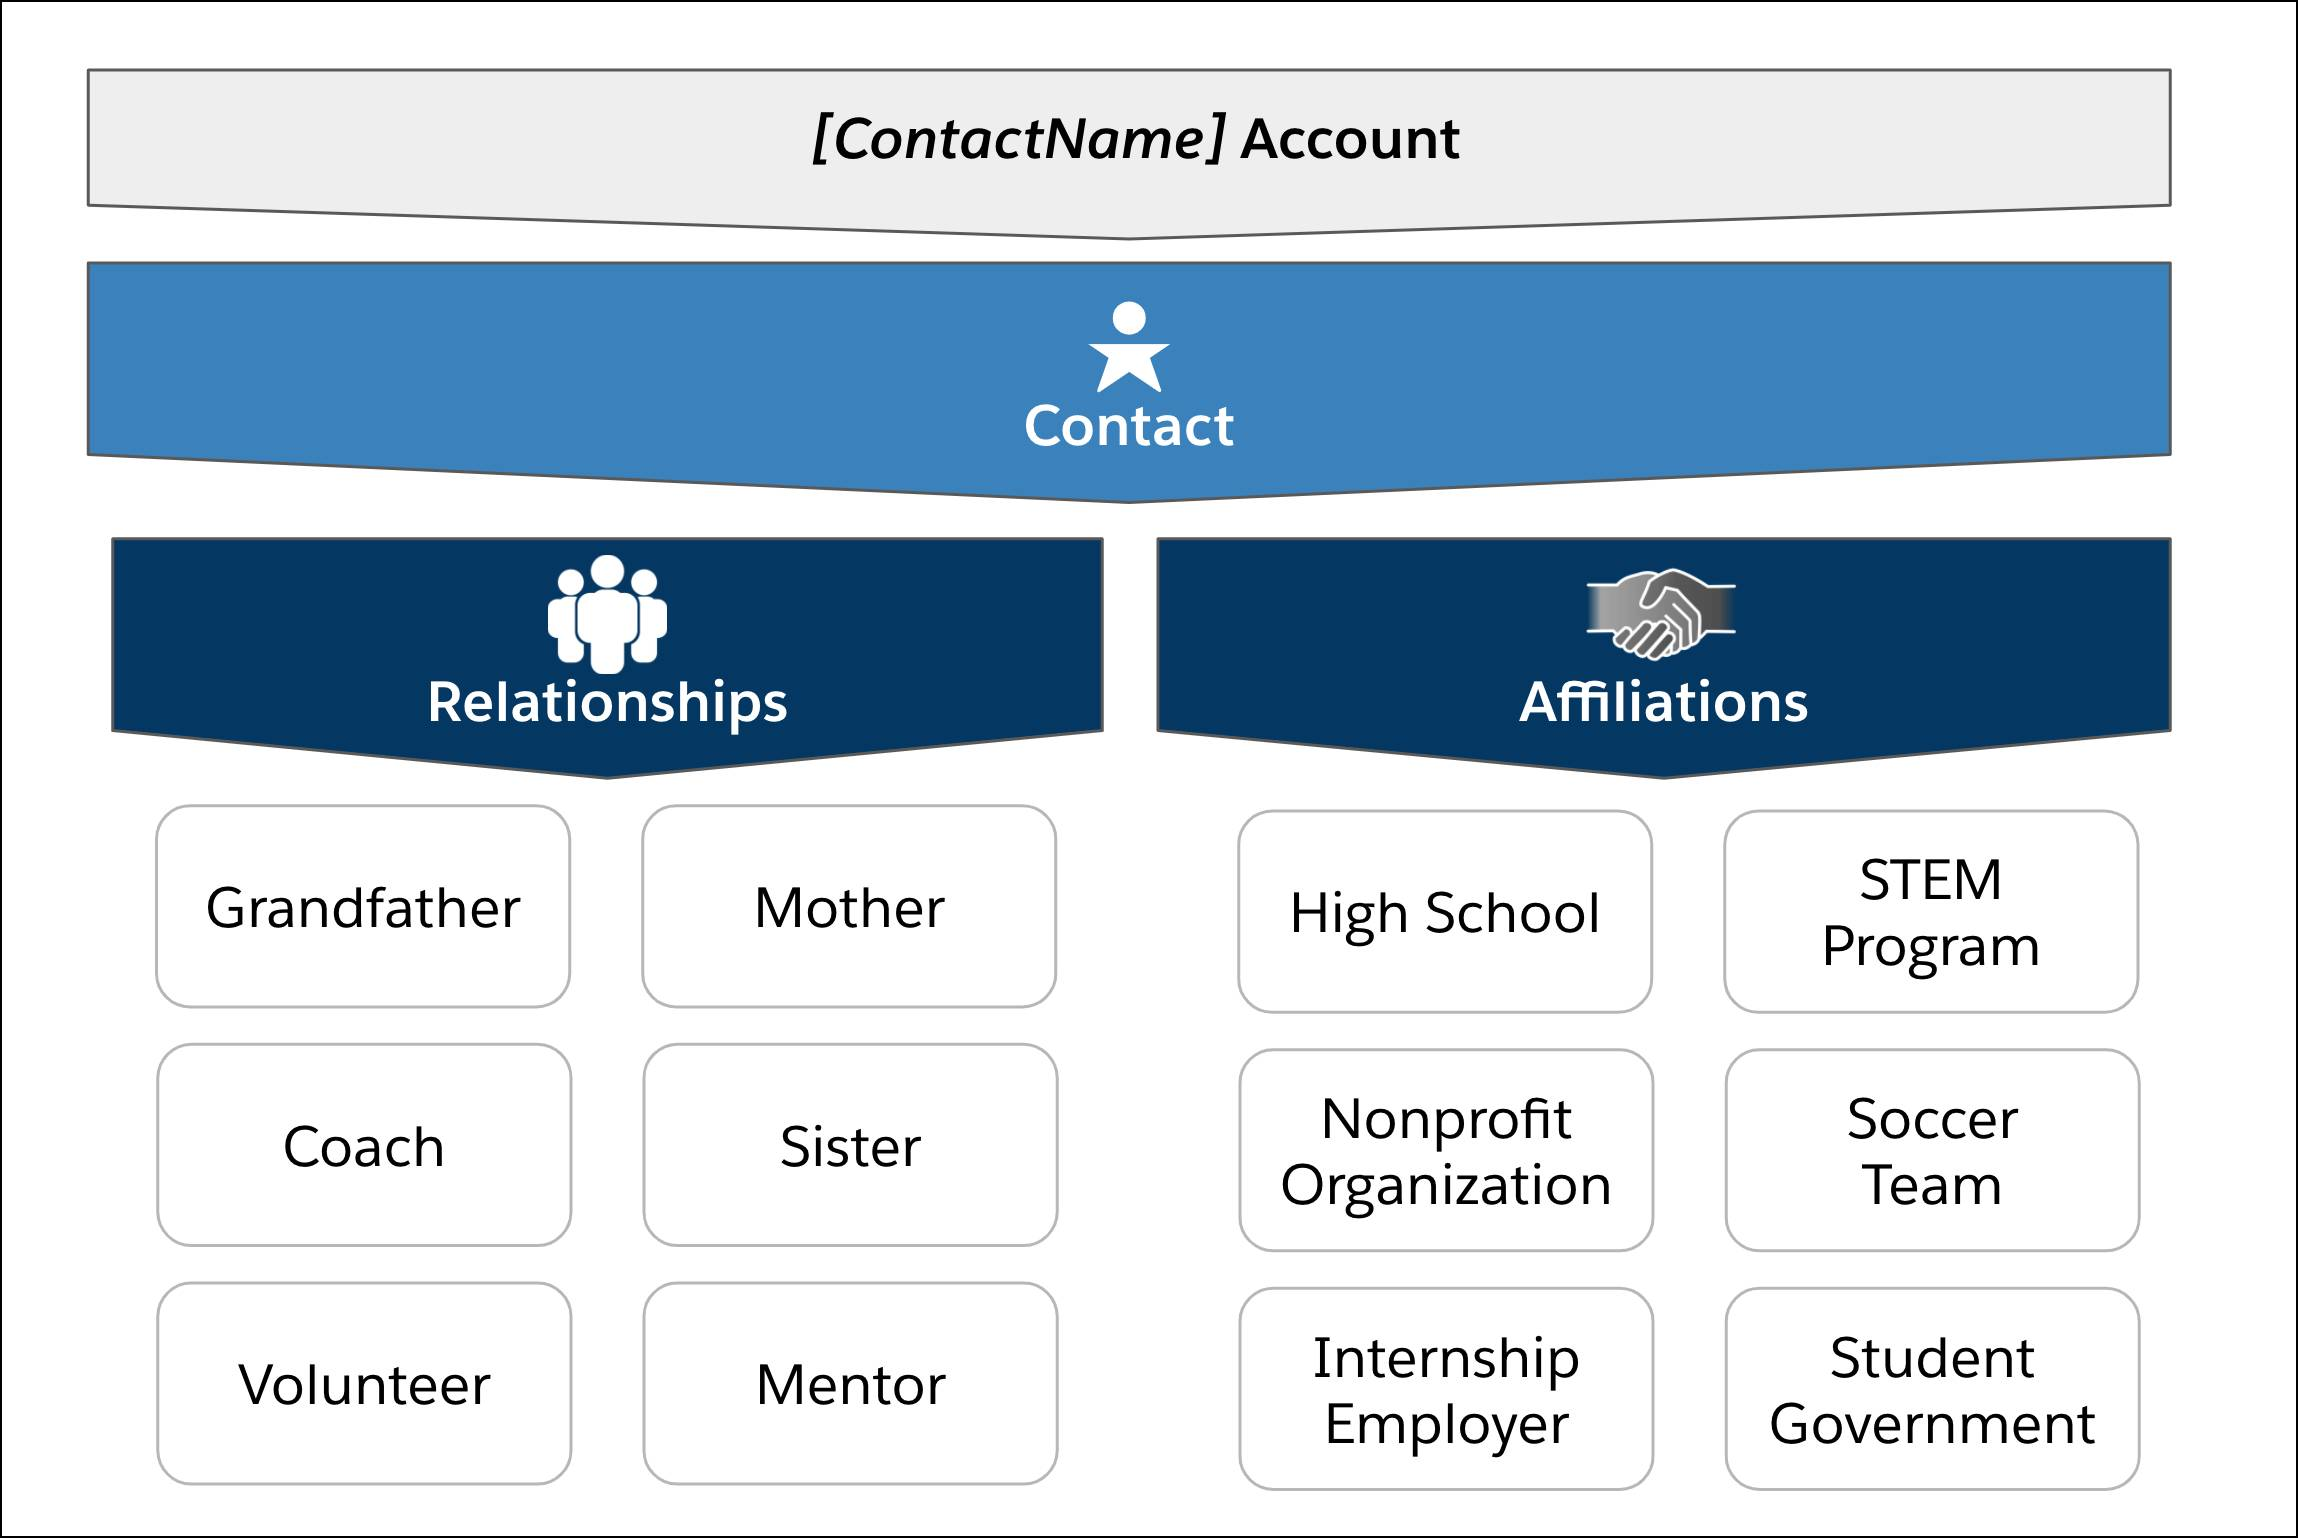 Sample Relationships and Affiliations for a student Contact.